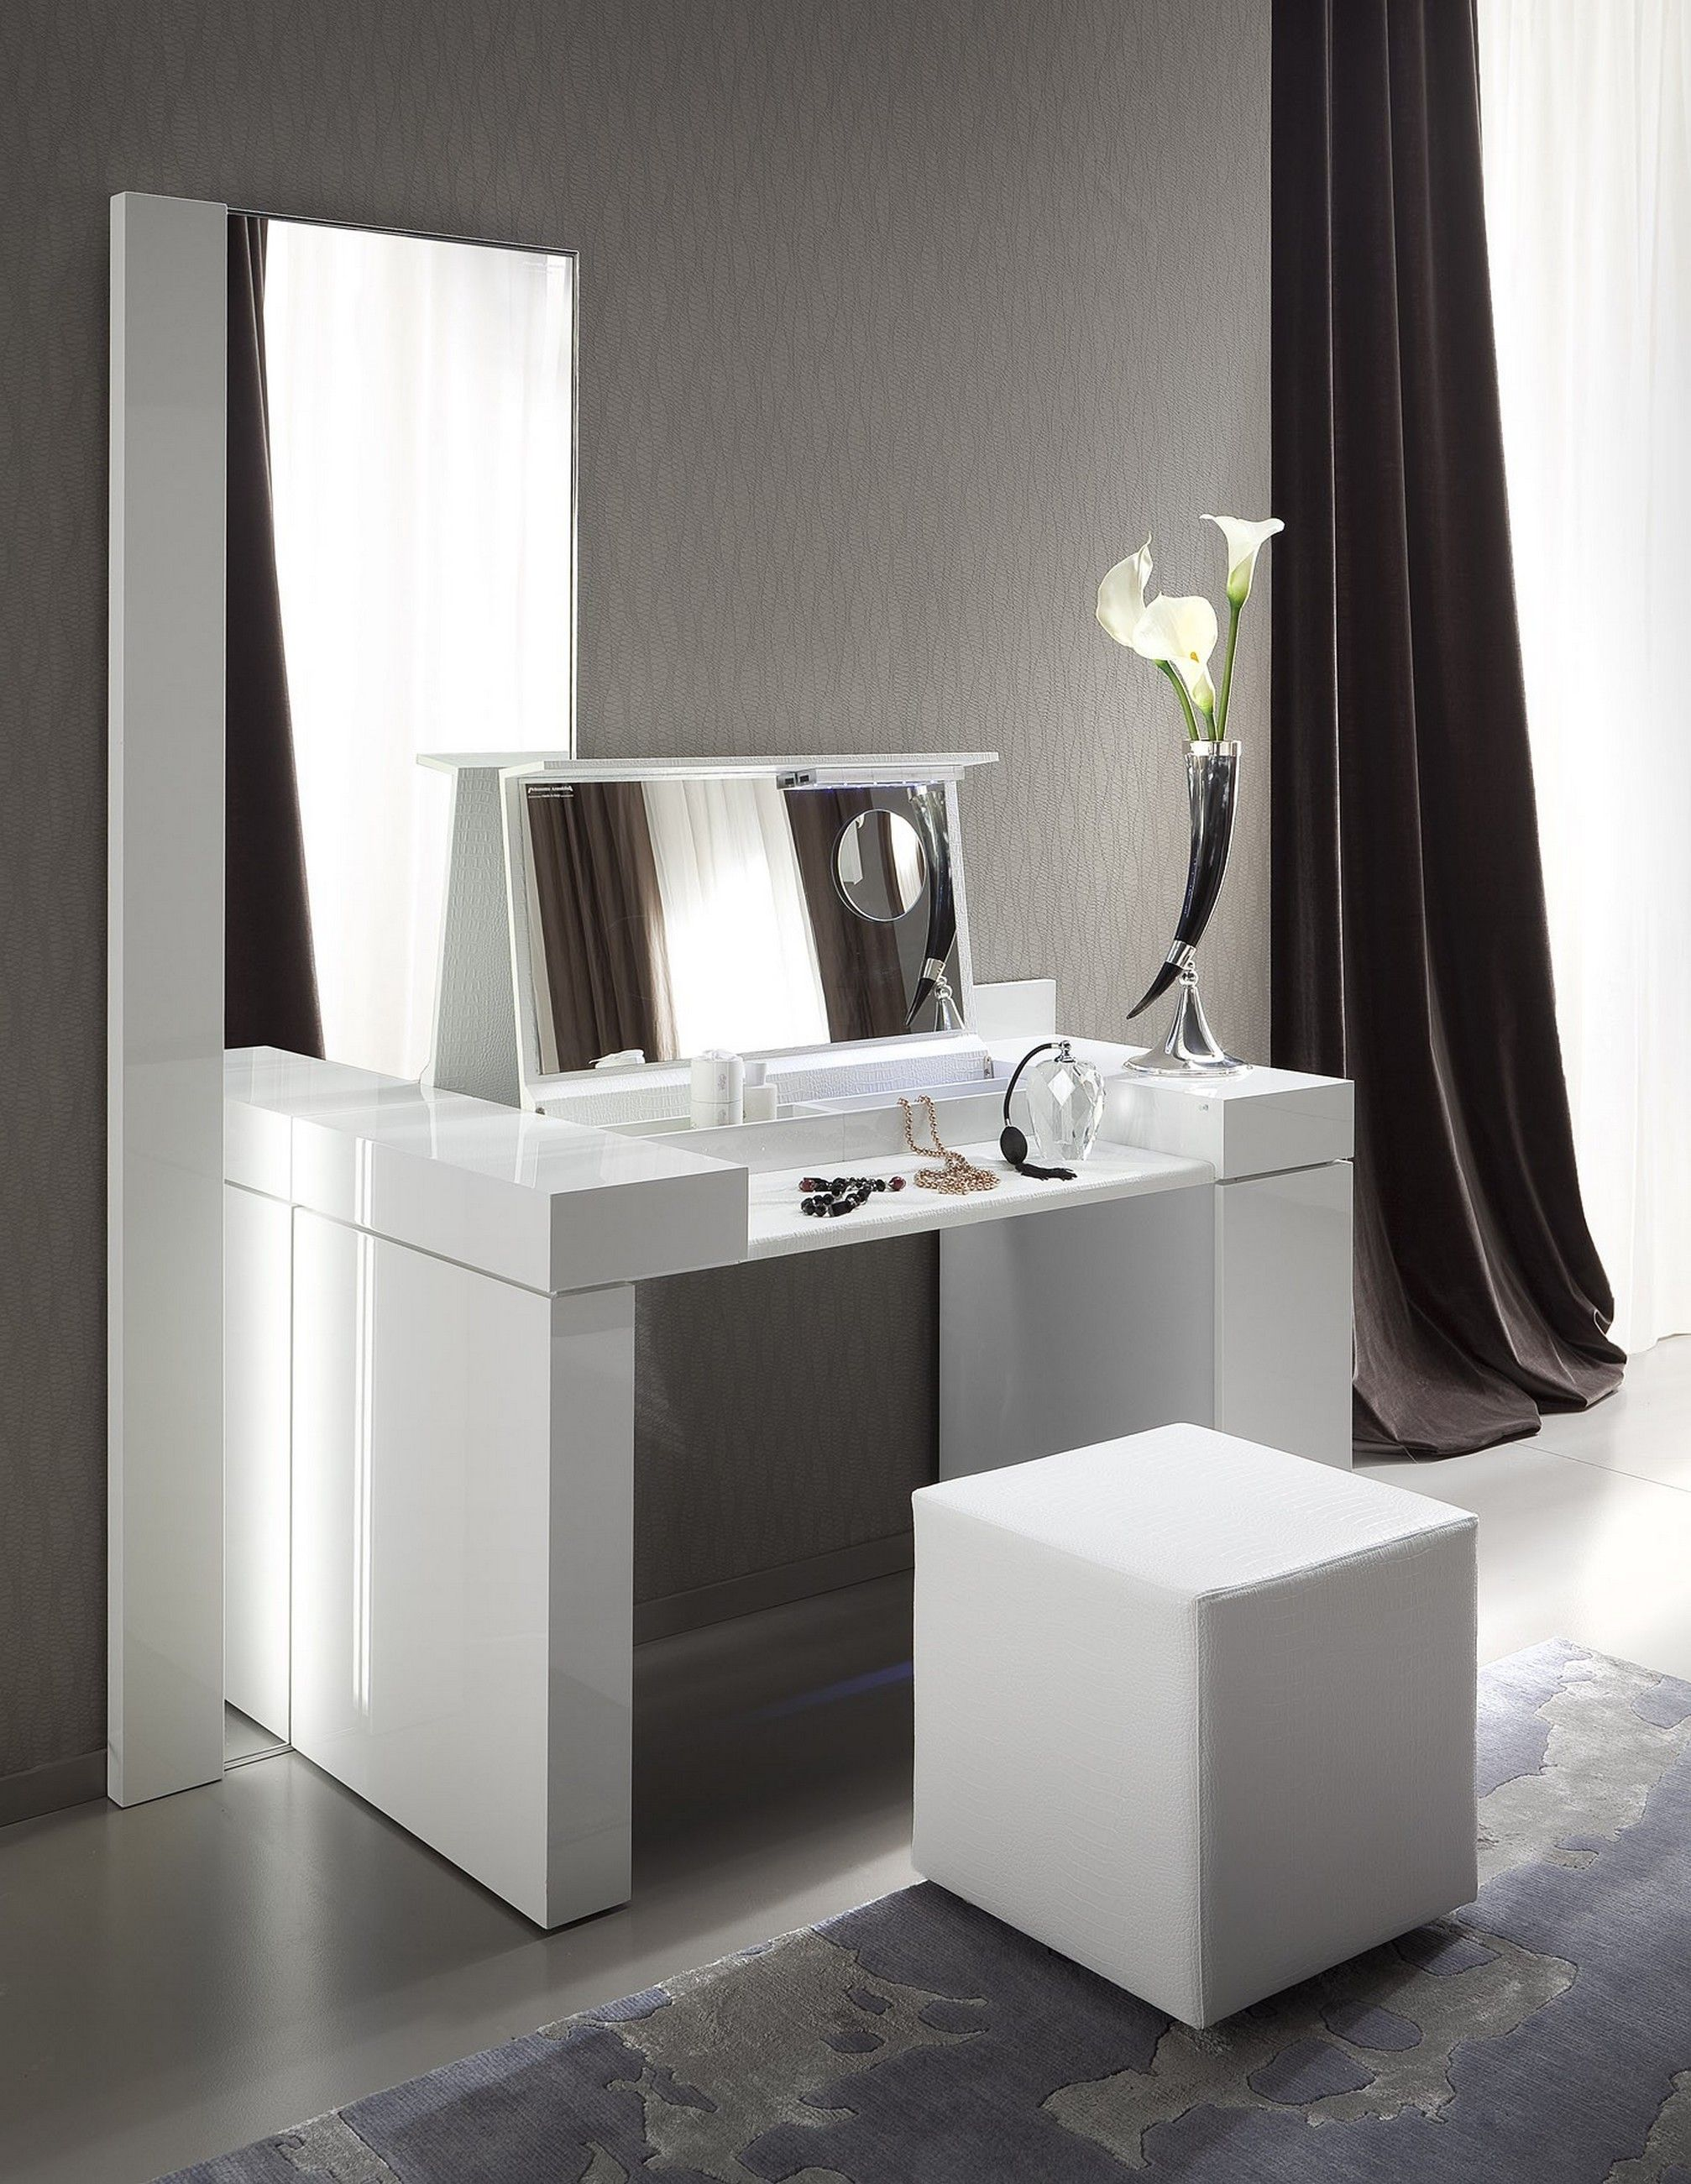 cheap best station mirrored modern bathroom mirror desk bedroom lighted dresser makeup white kids wonderful mirrors drawers lights full with girls dressing corner big glass table size vanity of ikea vanities set